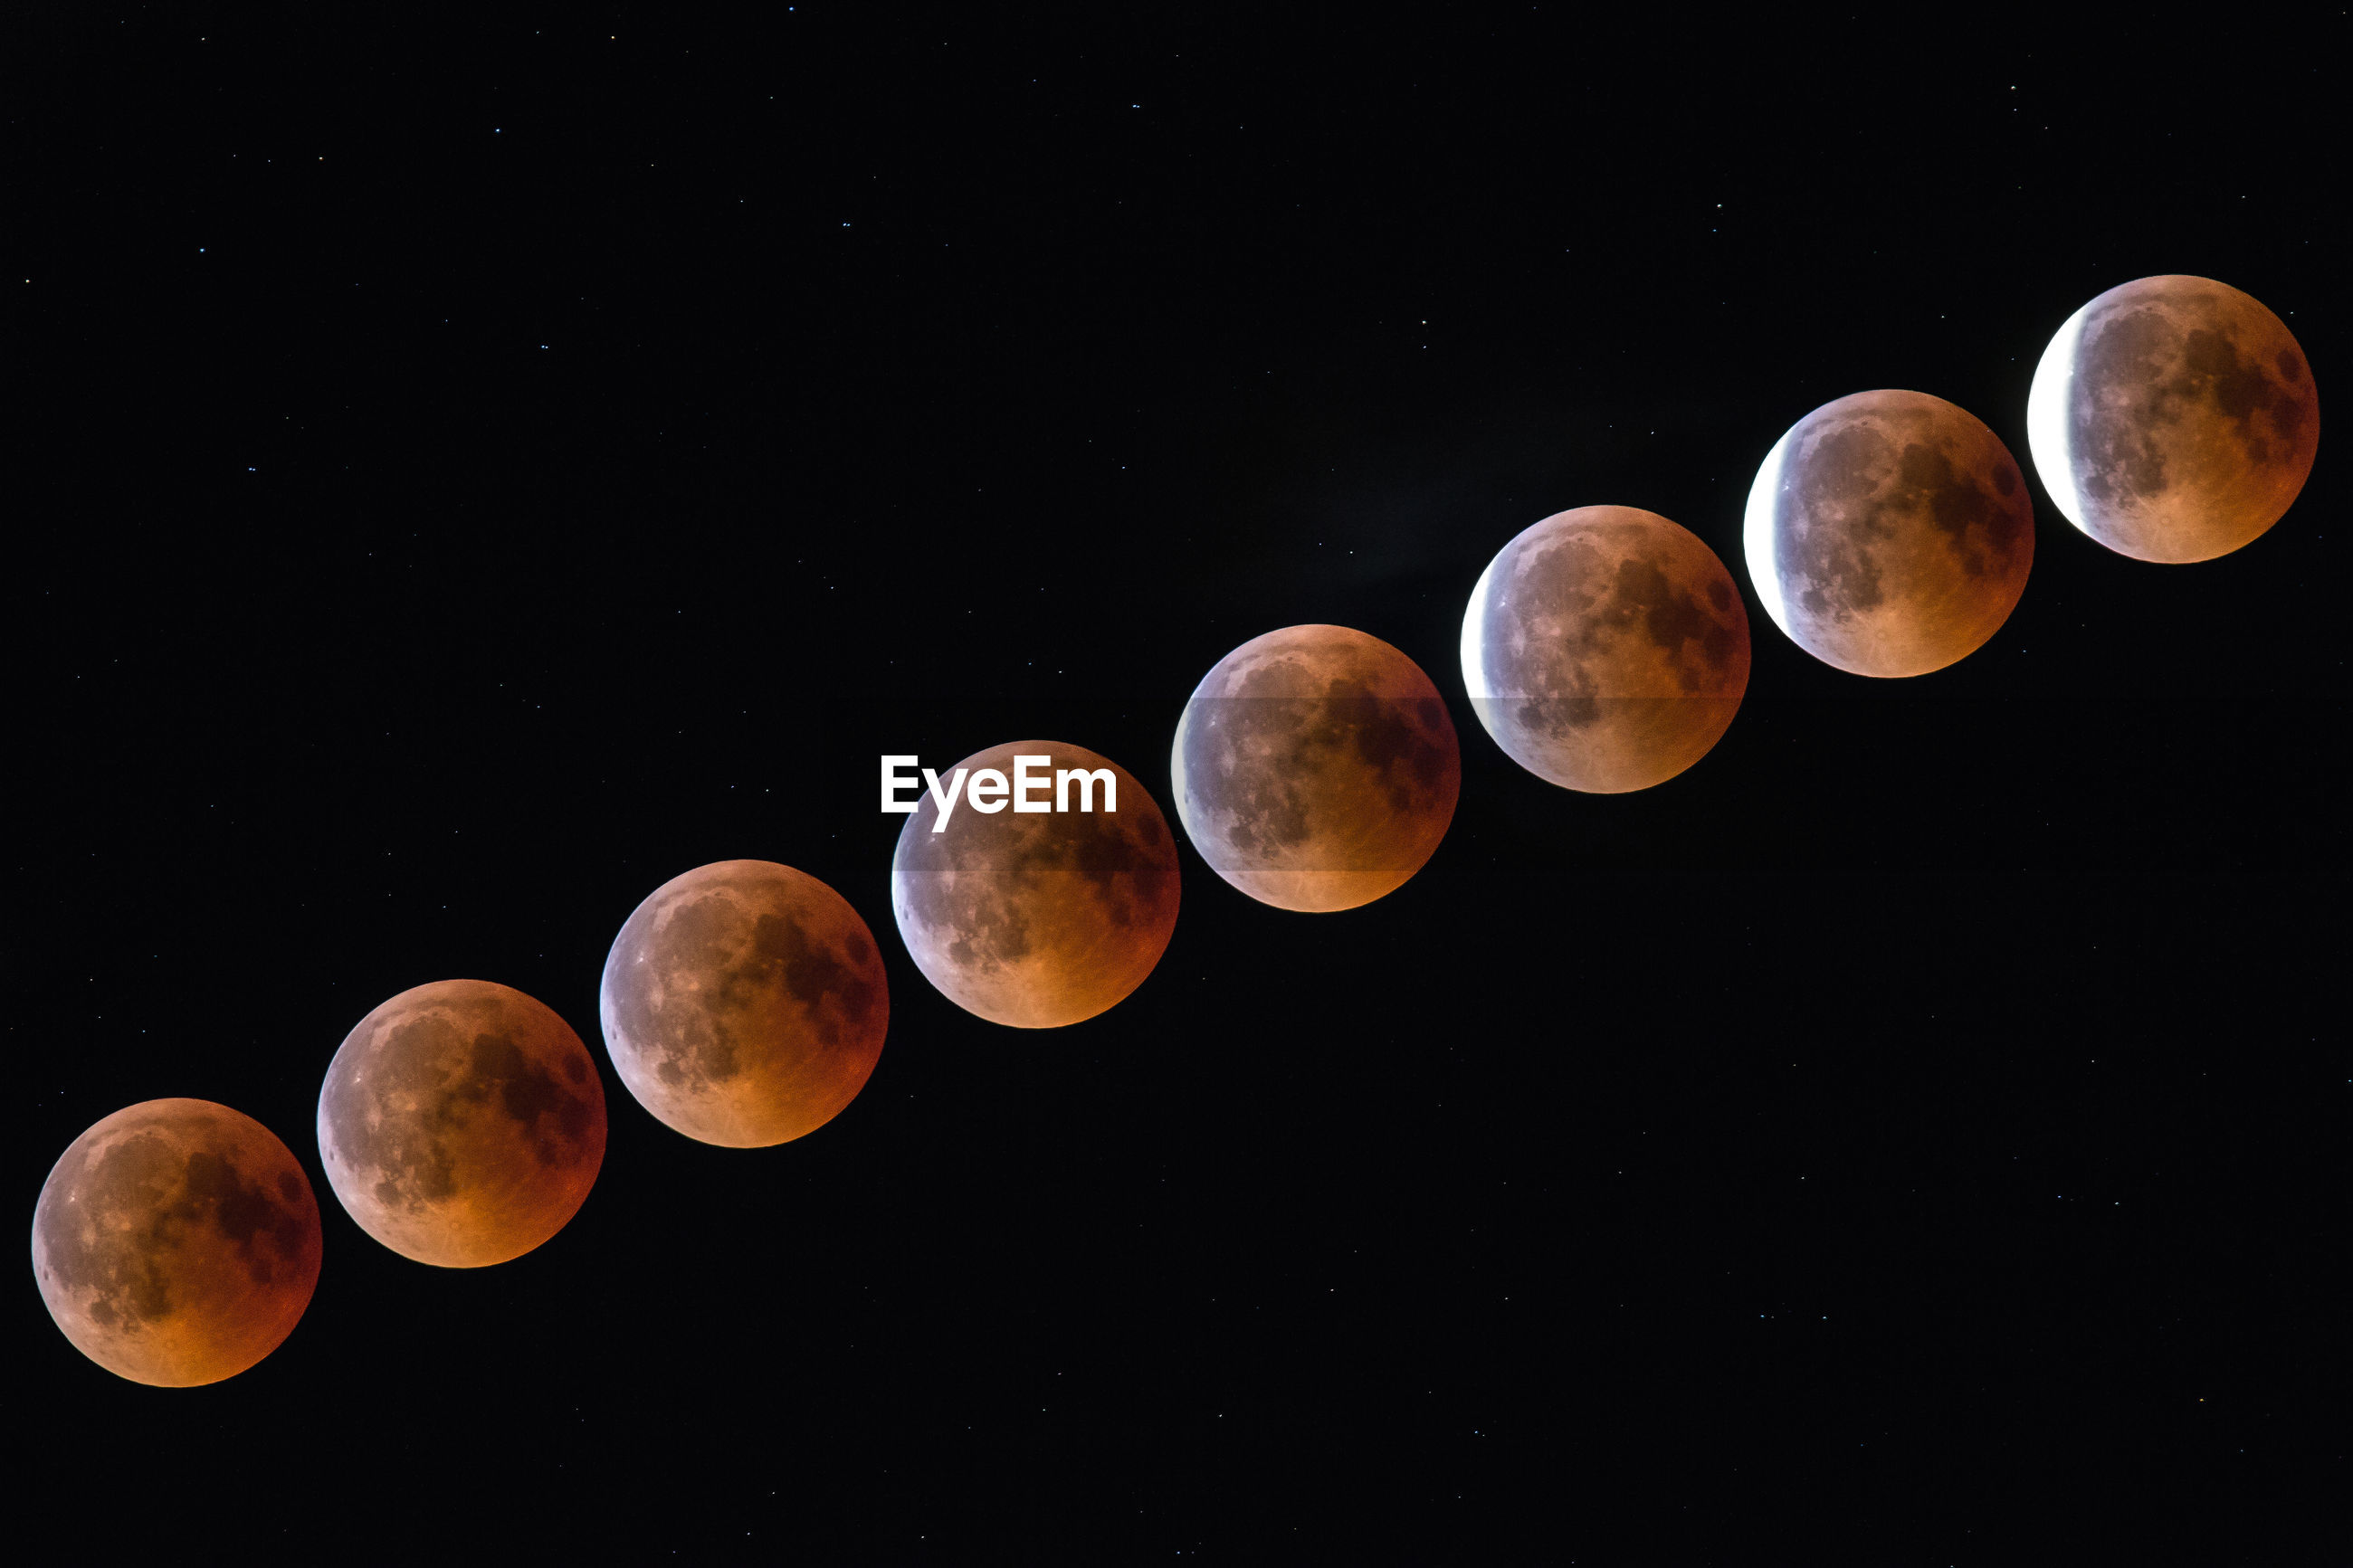 Digital composite image of lunar eclipse against clear sky at night